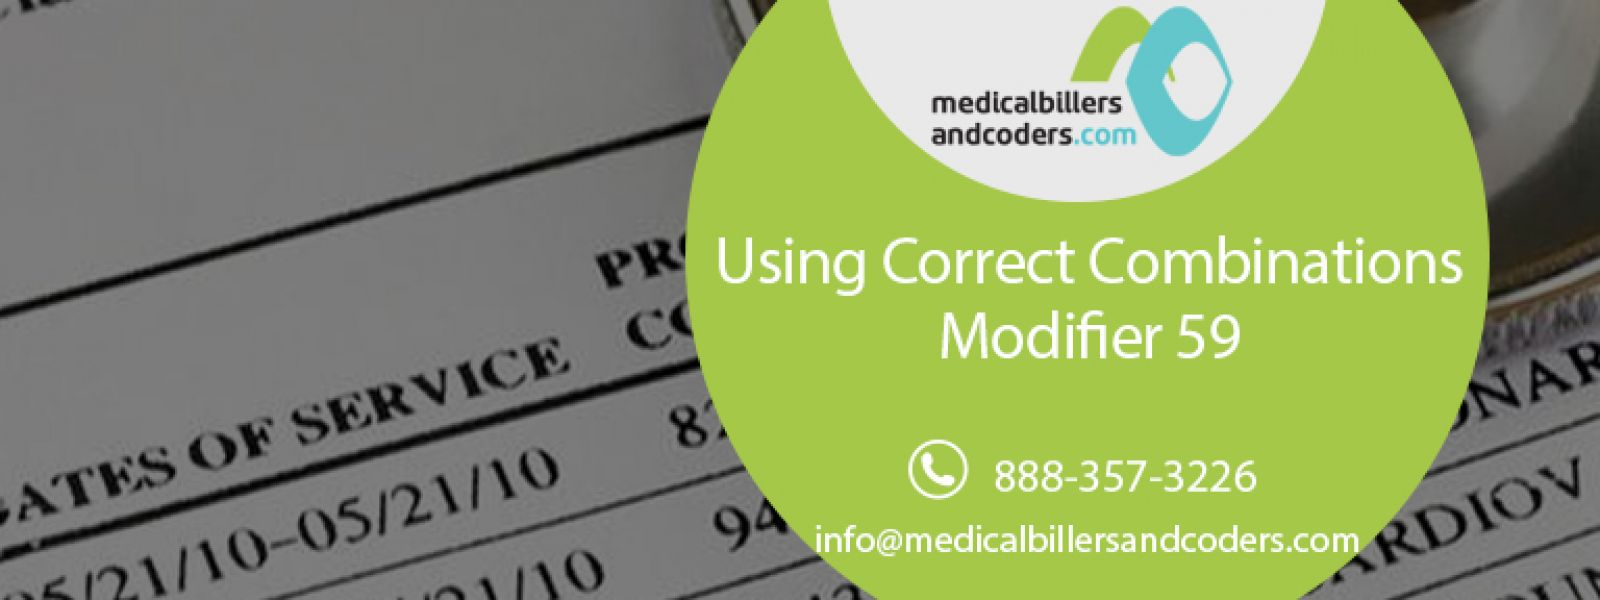 Using Correct Combinations – Modifier 59